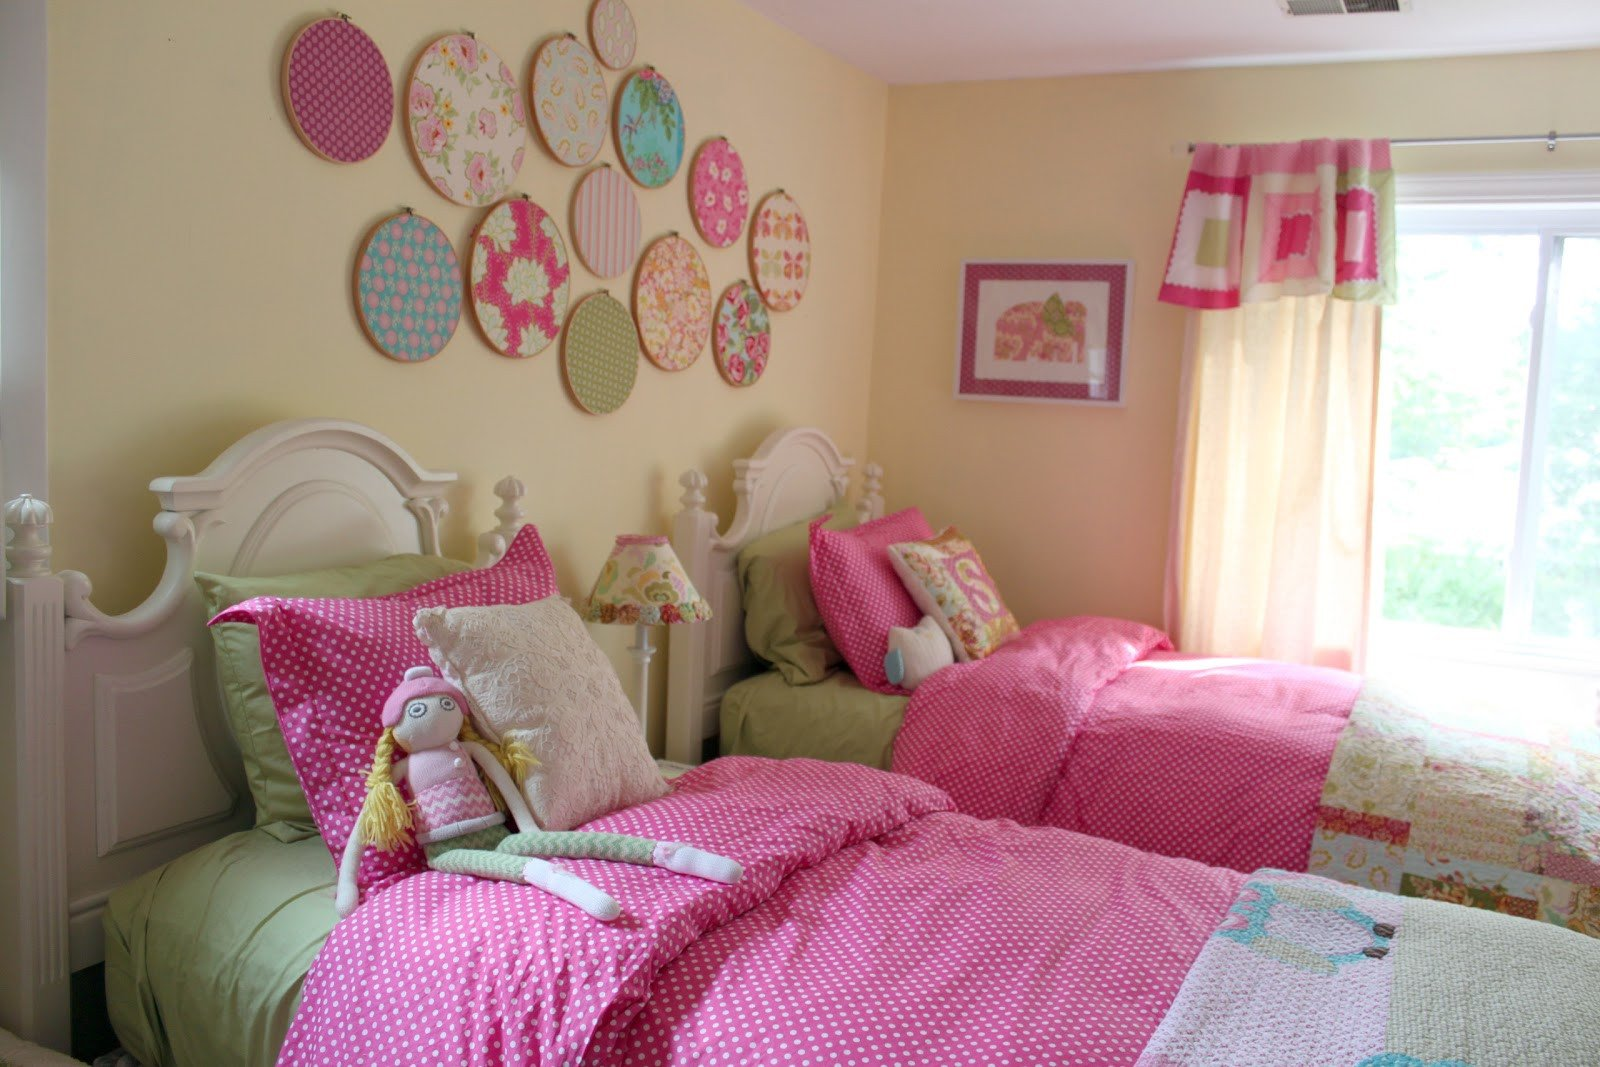 Wall Decor for Girls Bedroom Lovely Decorating Girls D toddler Bedroom the Cottage Mama